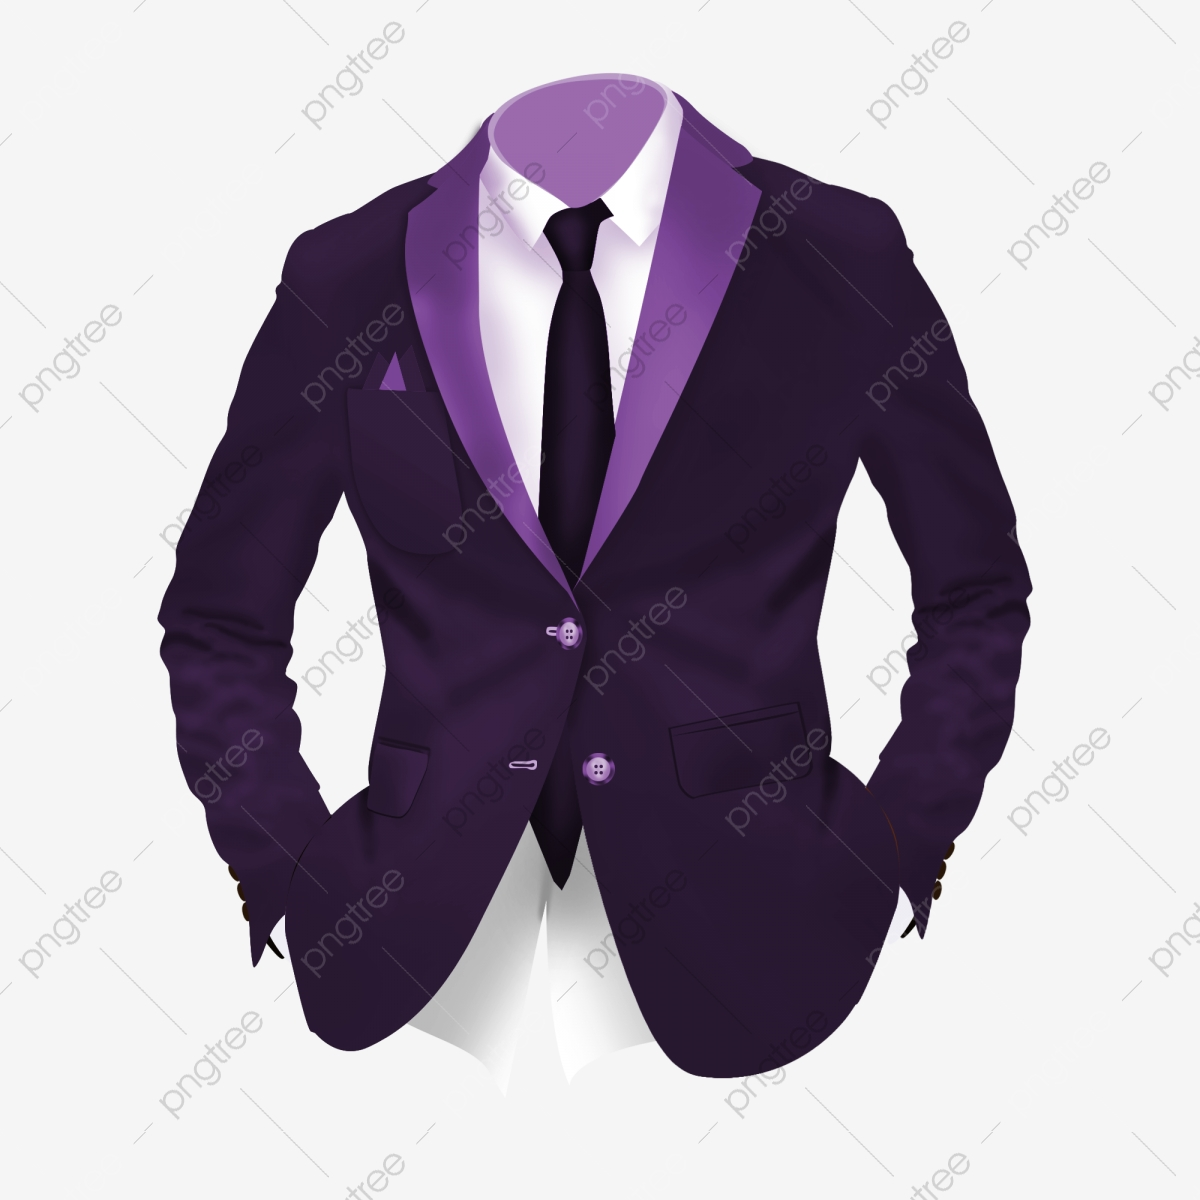 Tuxedo clipart, cliparts of Tuxedo free download (wmf, eps, emf, svg, png,  gif) formats